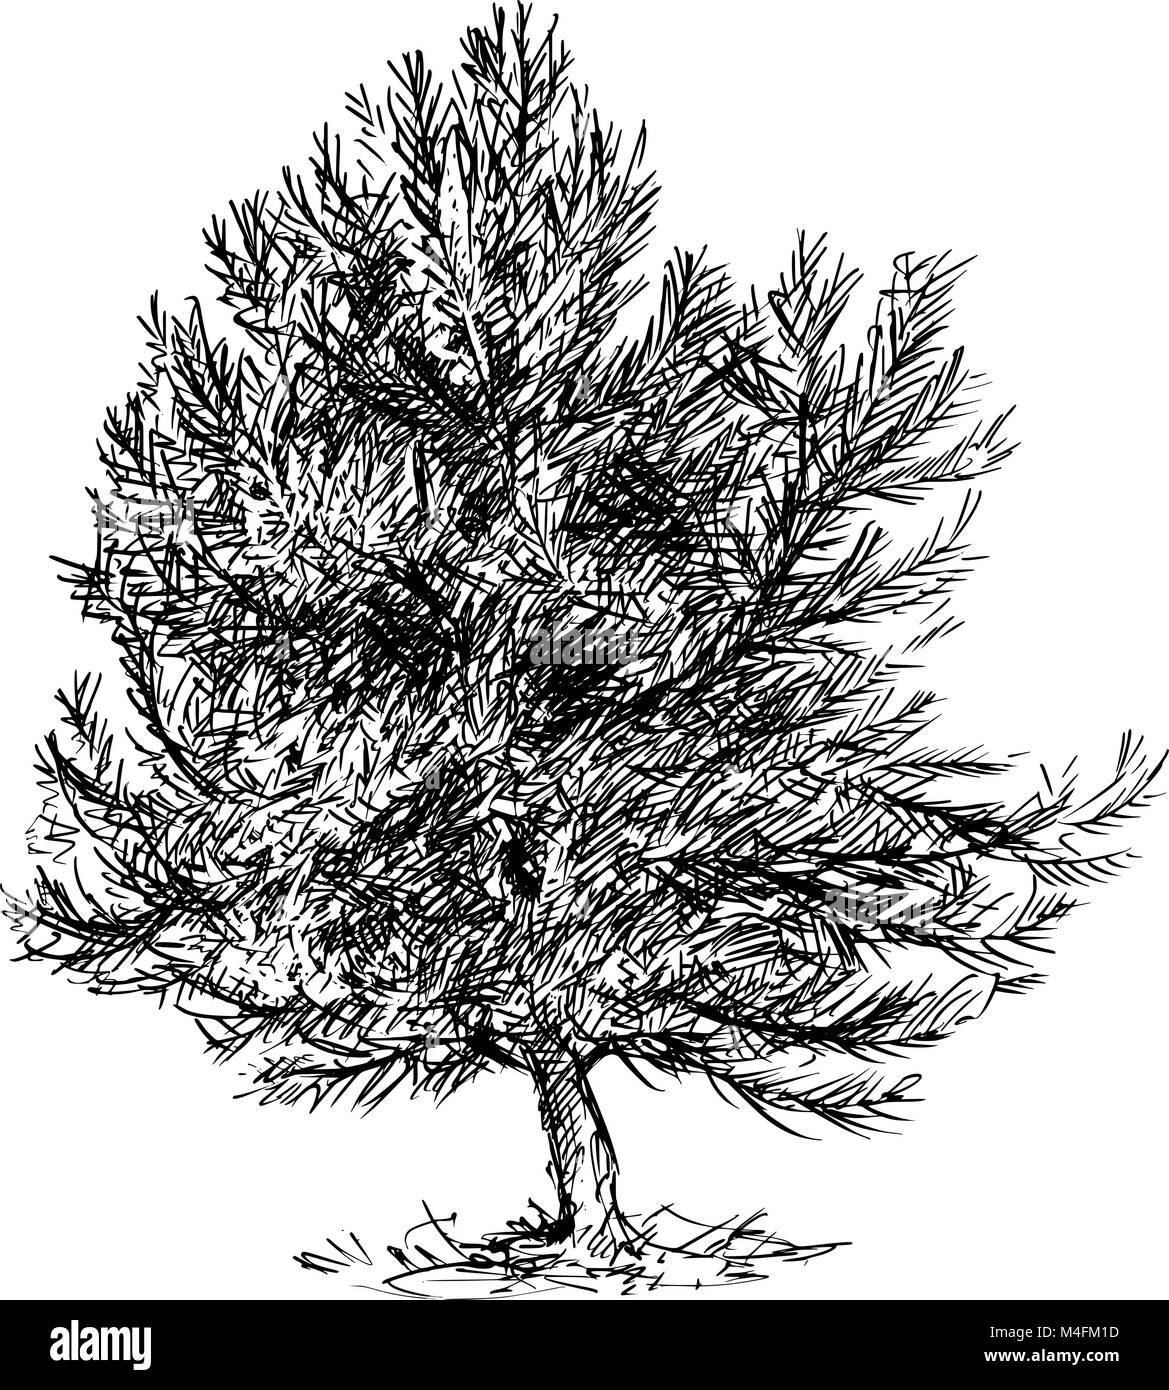 Cartoon Vector Drawing of Pine Conifer Tree - Stock Image